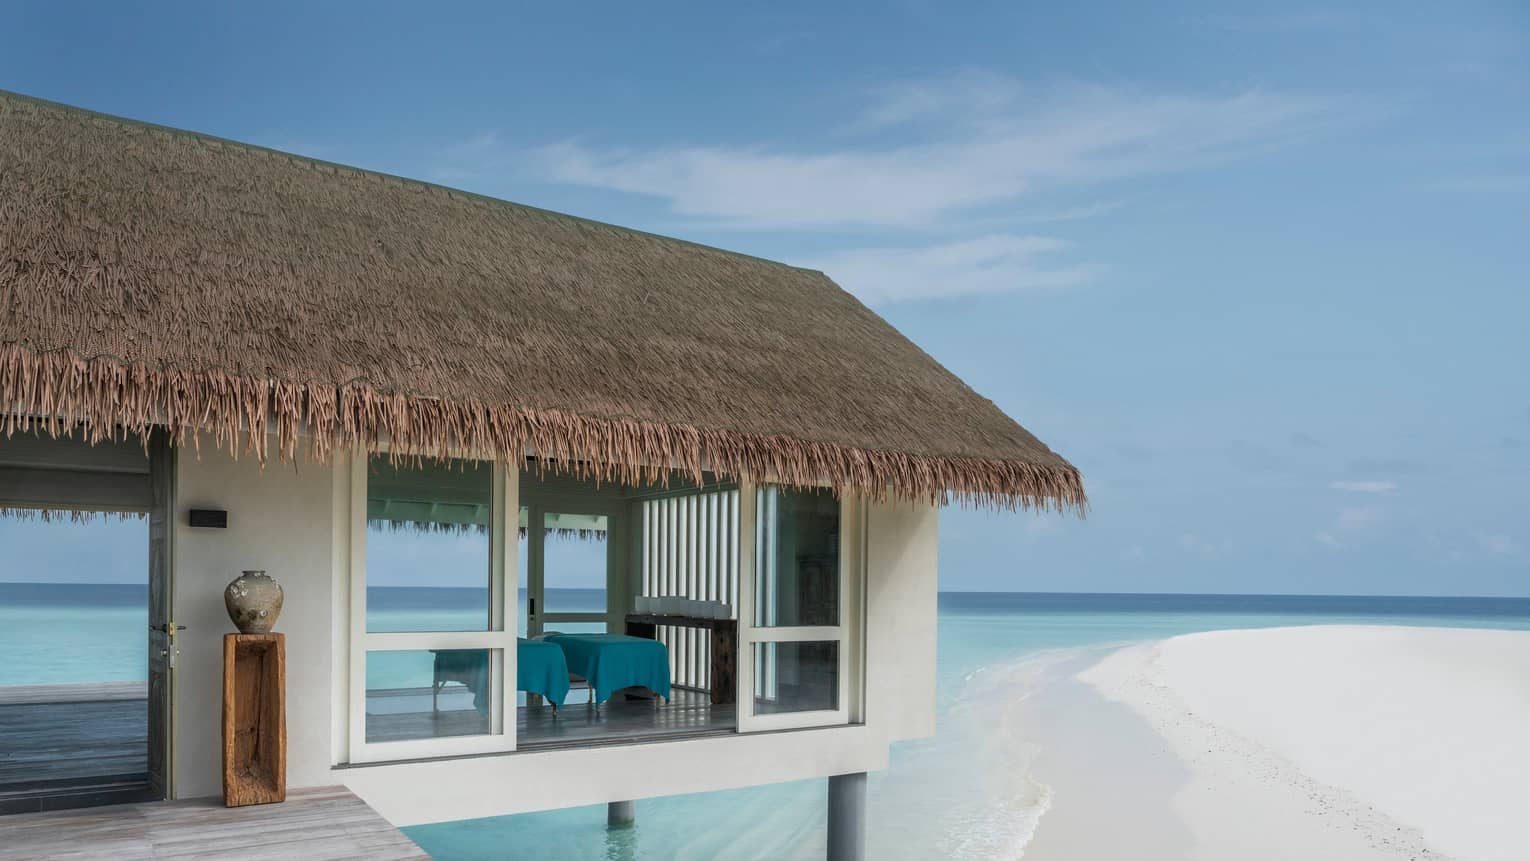 Exterior view of thatched roof spa with massage beds in open-air room over lagoon